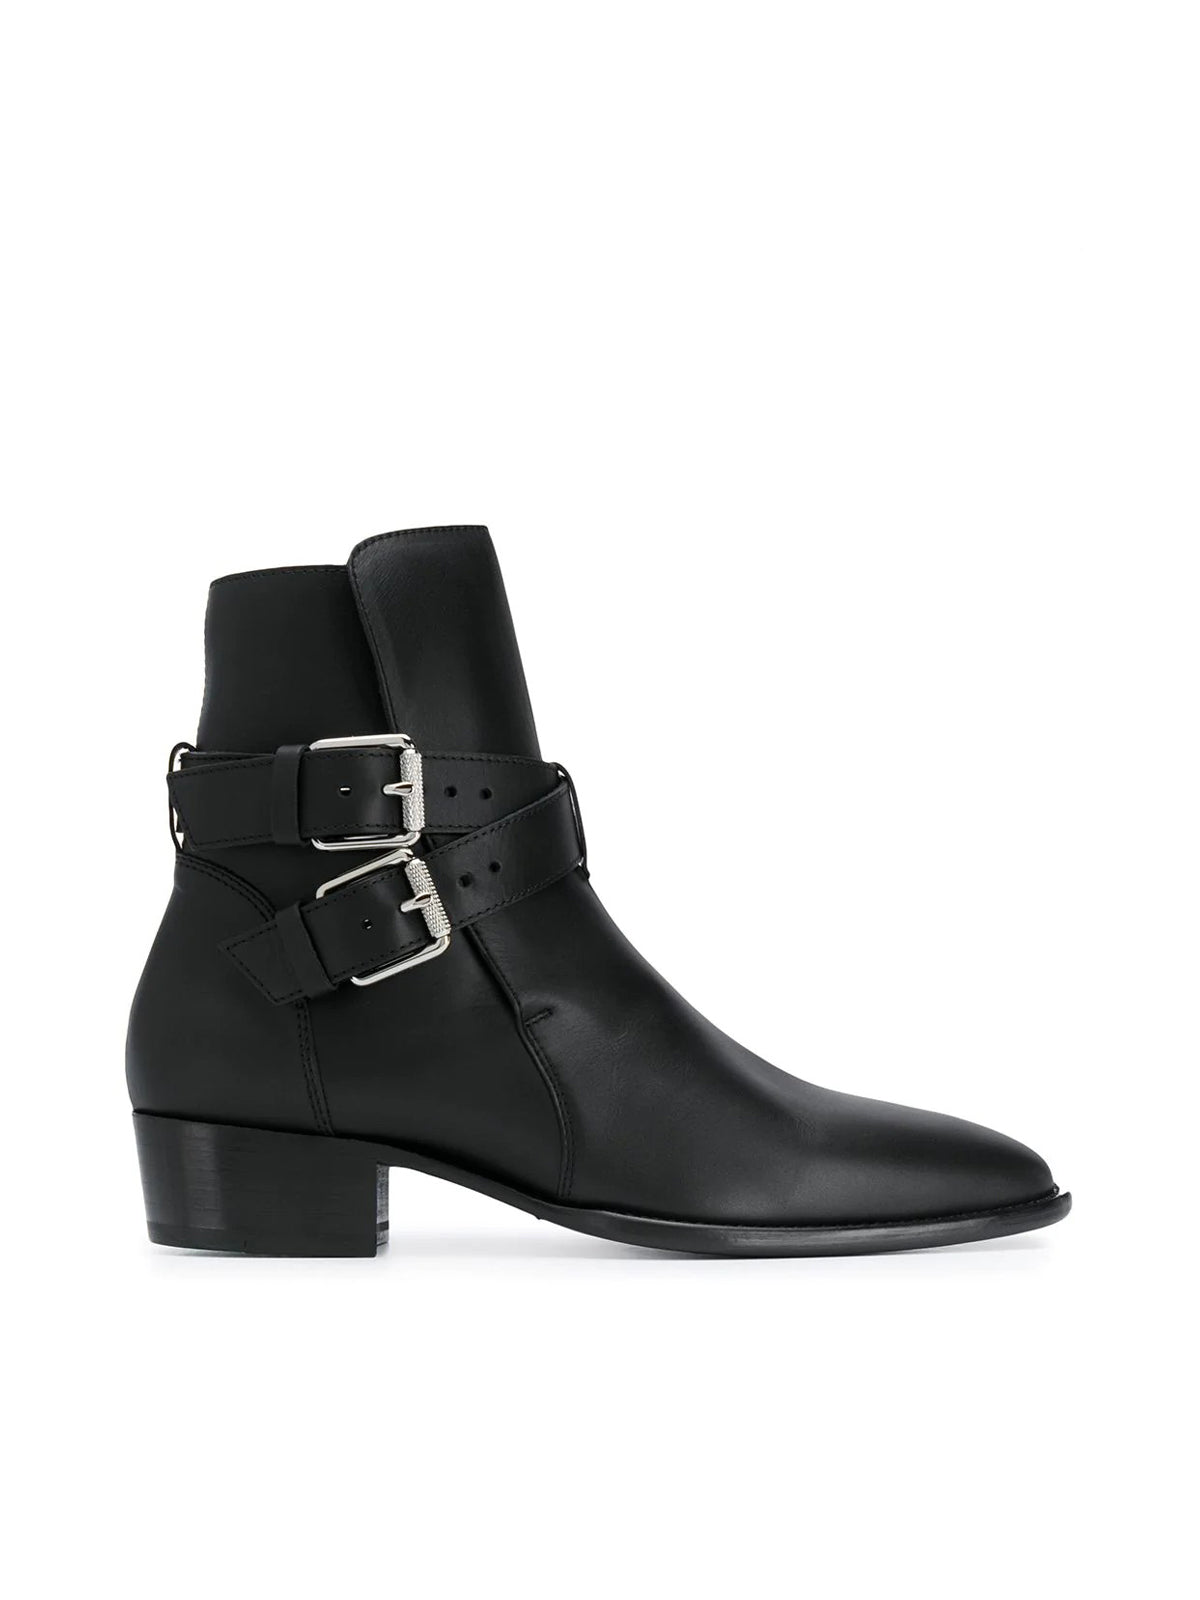 Ankle boots with double buckle